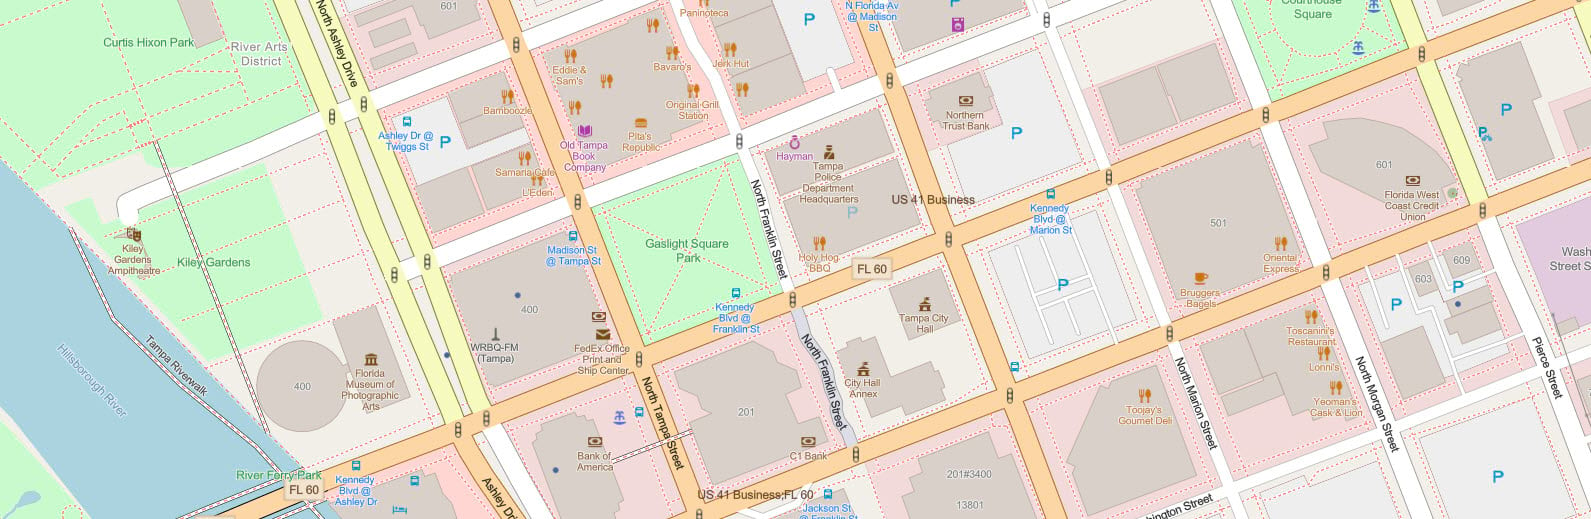 What's New with OpenStreetMap Basemap (June 2019)